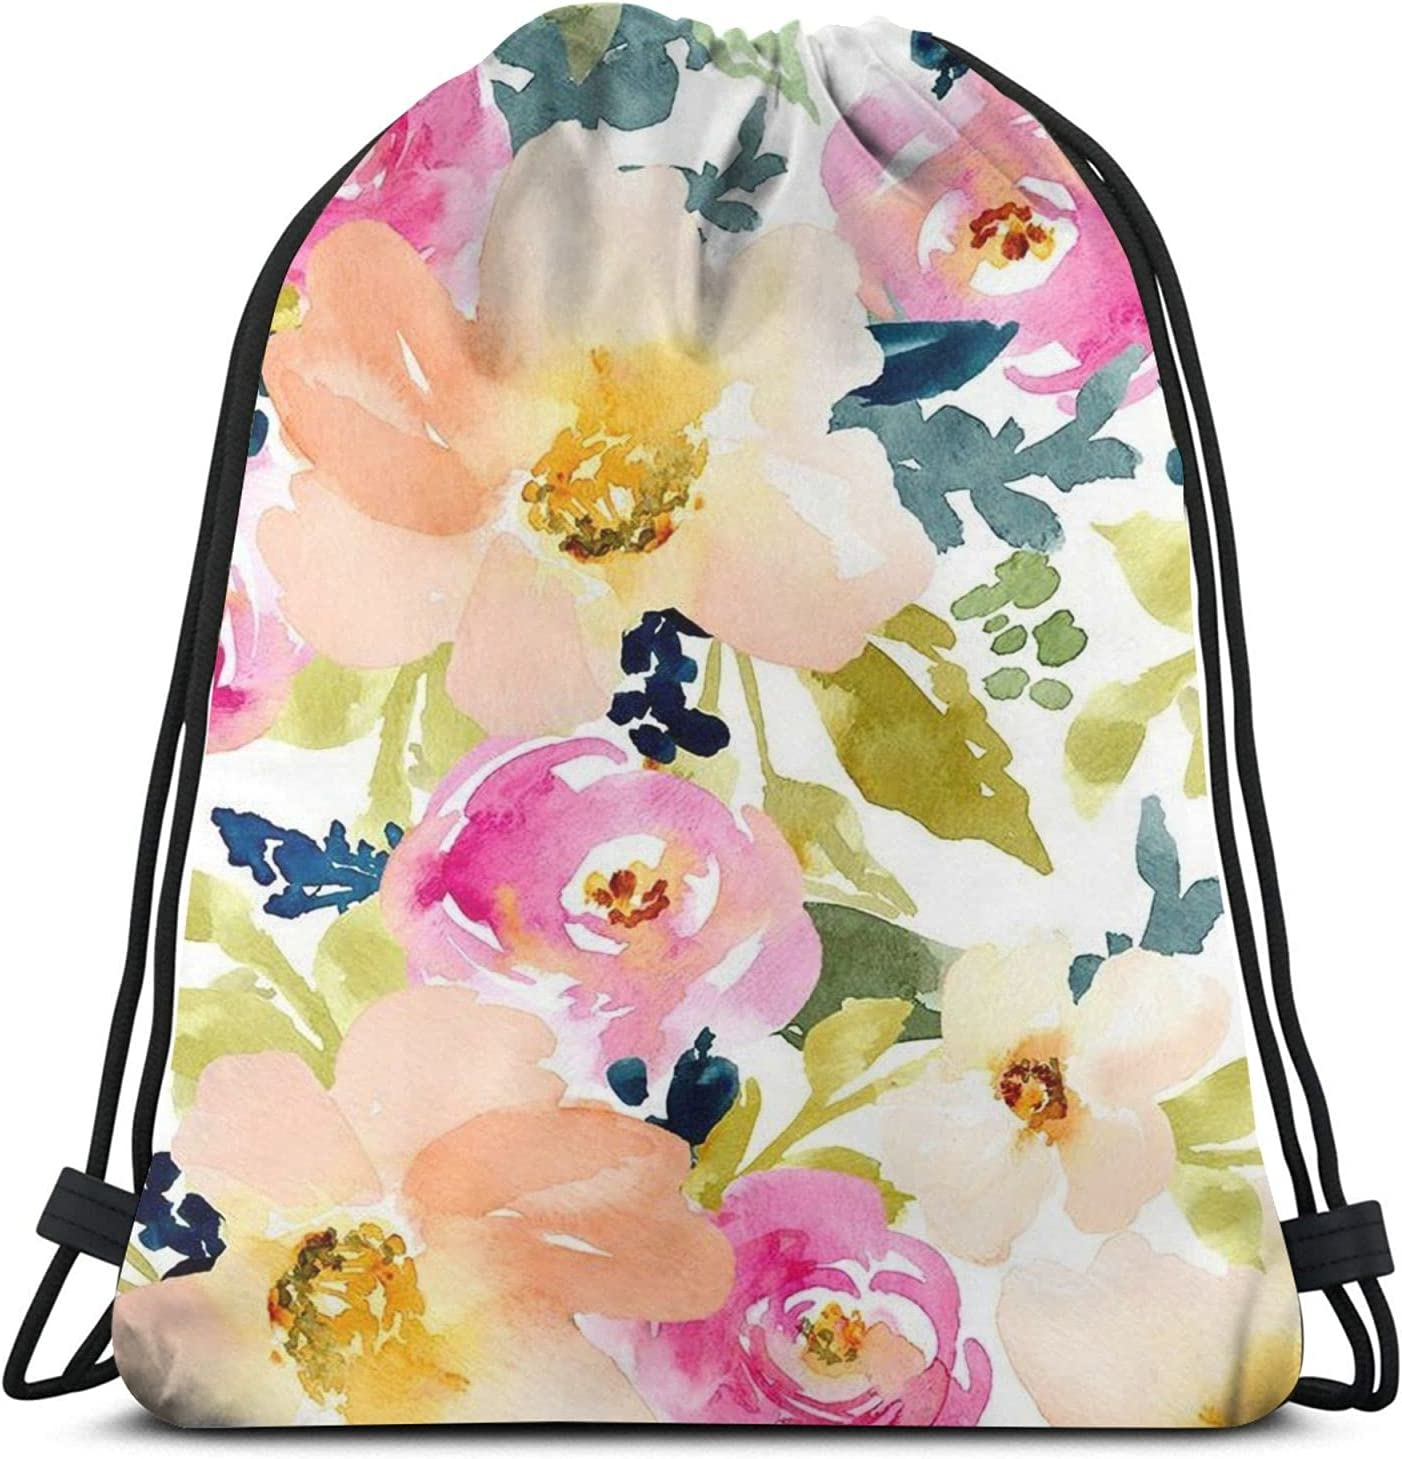 Watercolor Pink All stores Great interest are sold White Floral Flower Sport Gy Drawstring Backpack